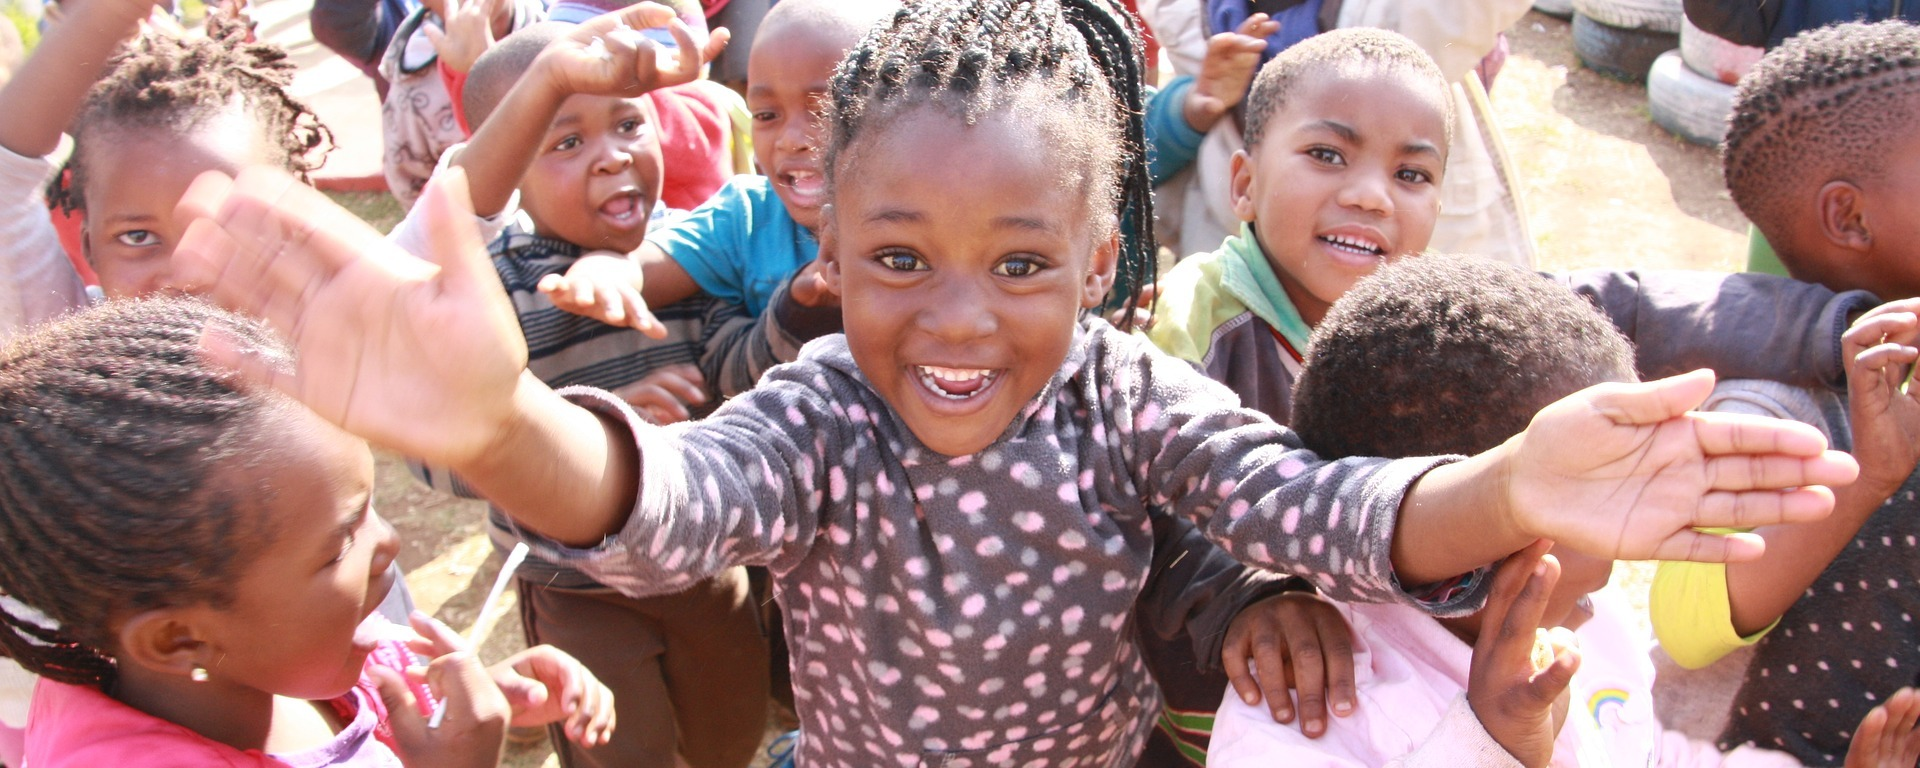 soweto,village,happiness,africa,children,preschool,girl,people,south africa,black,daycare,welcome